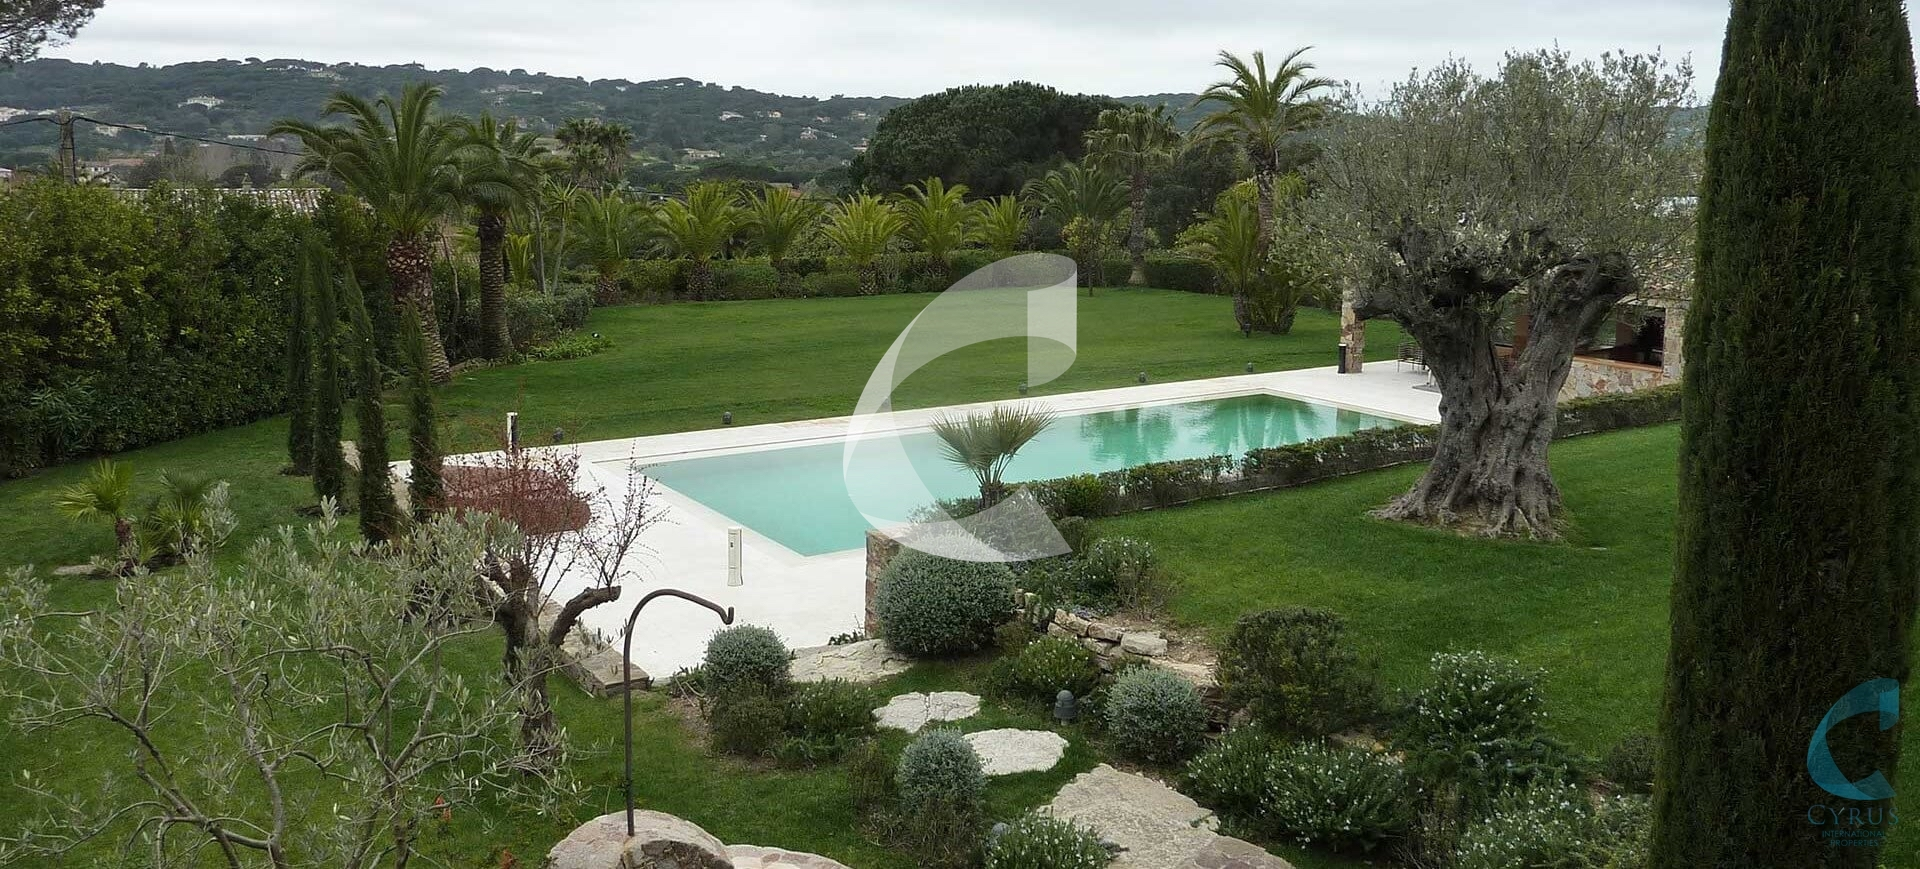 St Tropez Villa pool Rental